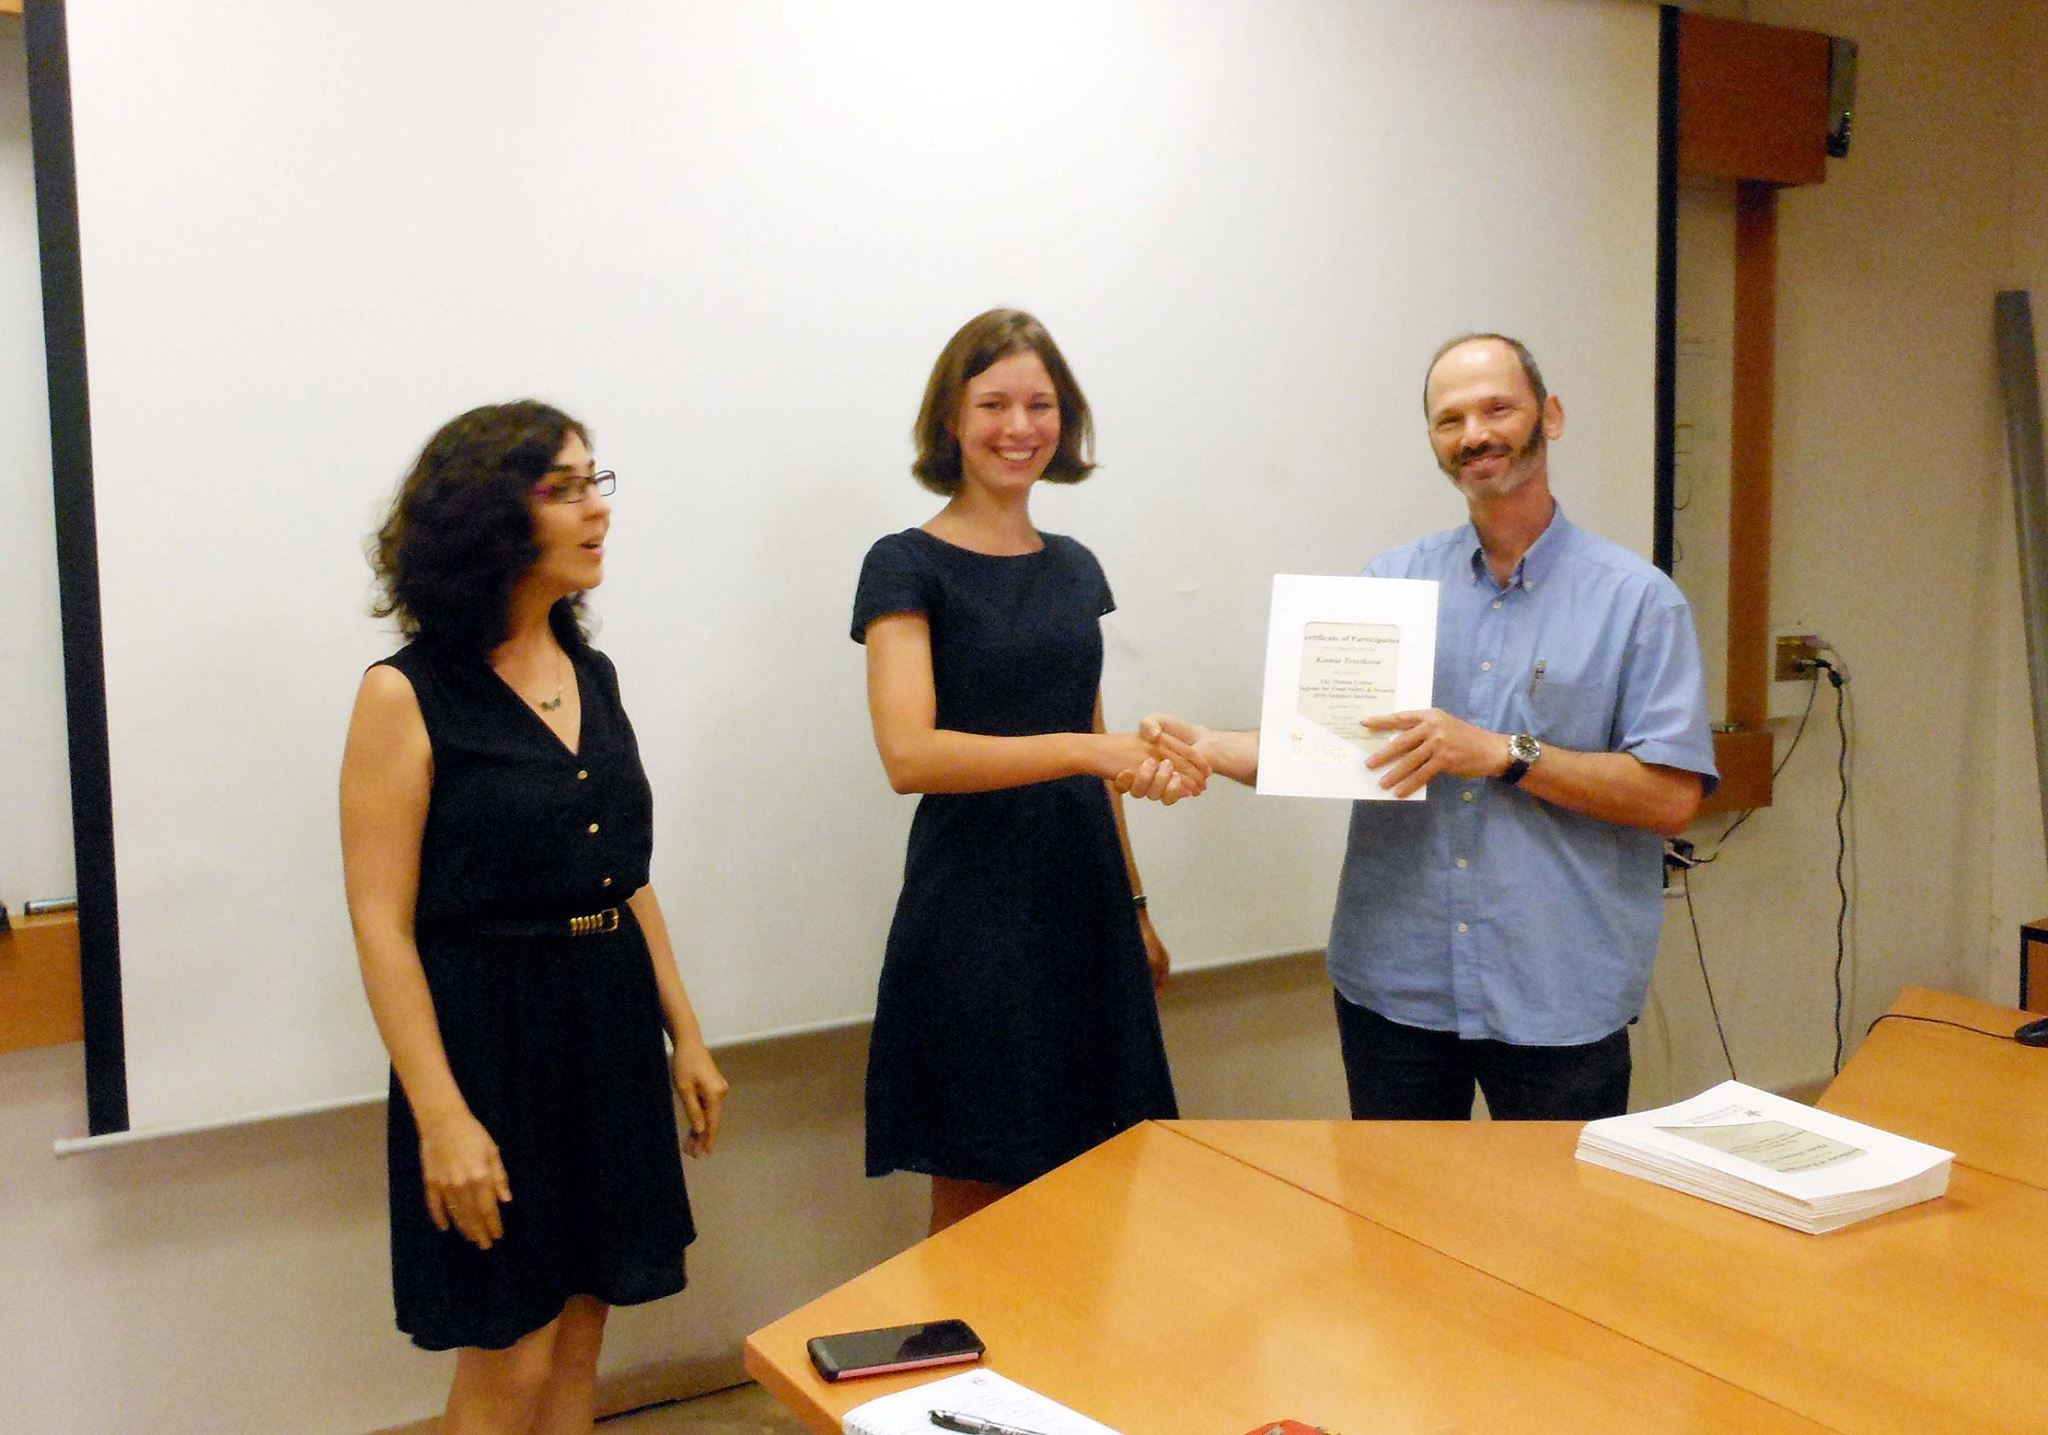 Ksenia Tsvetkova receives her diploma from the program director, Prof. Nir Ohad